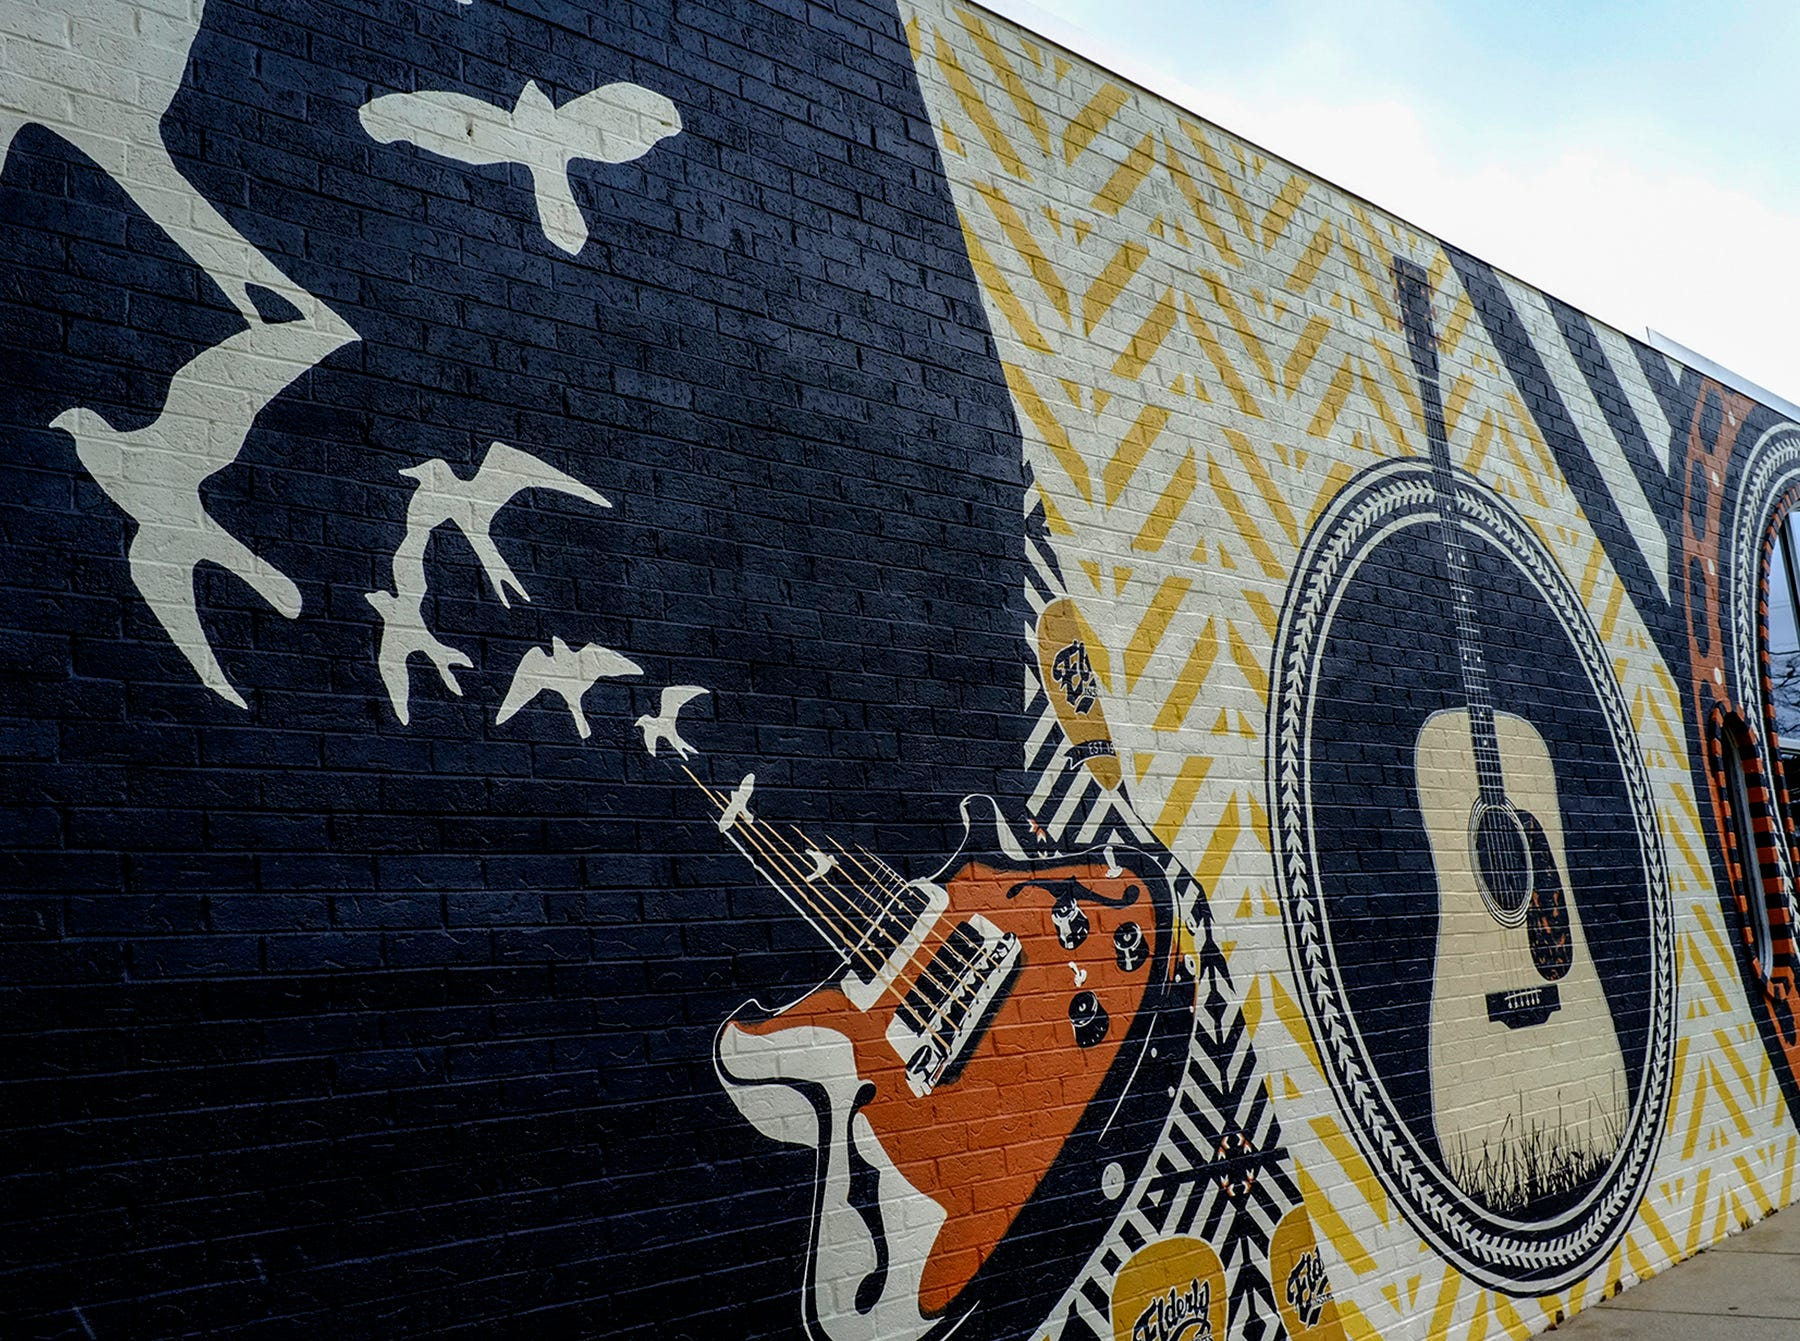 A 68 foot mural by Jennifer Springman is displayed on the wall of Elderly Instruments at 1100 N. Washington Avenue in Lansing's Old Town.